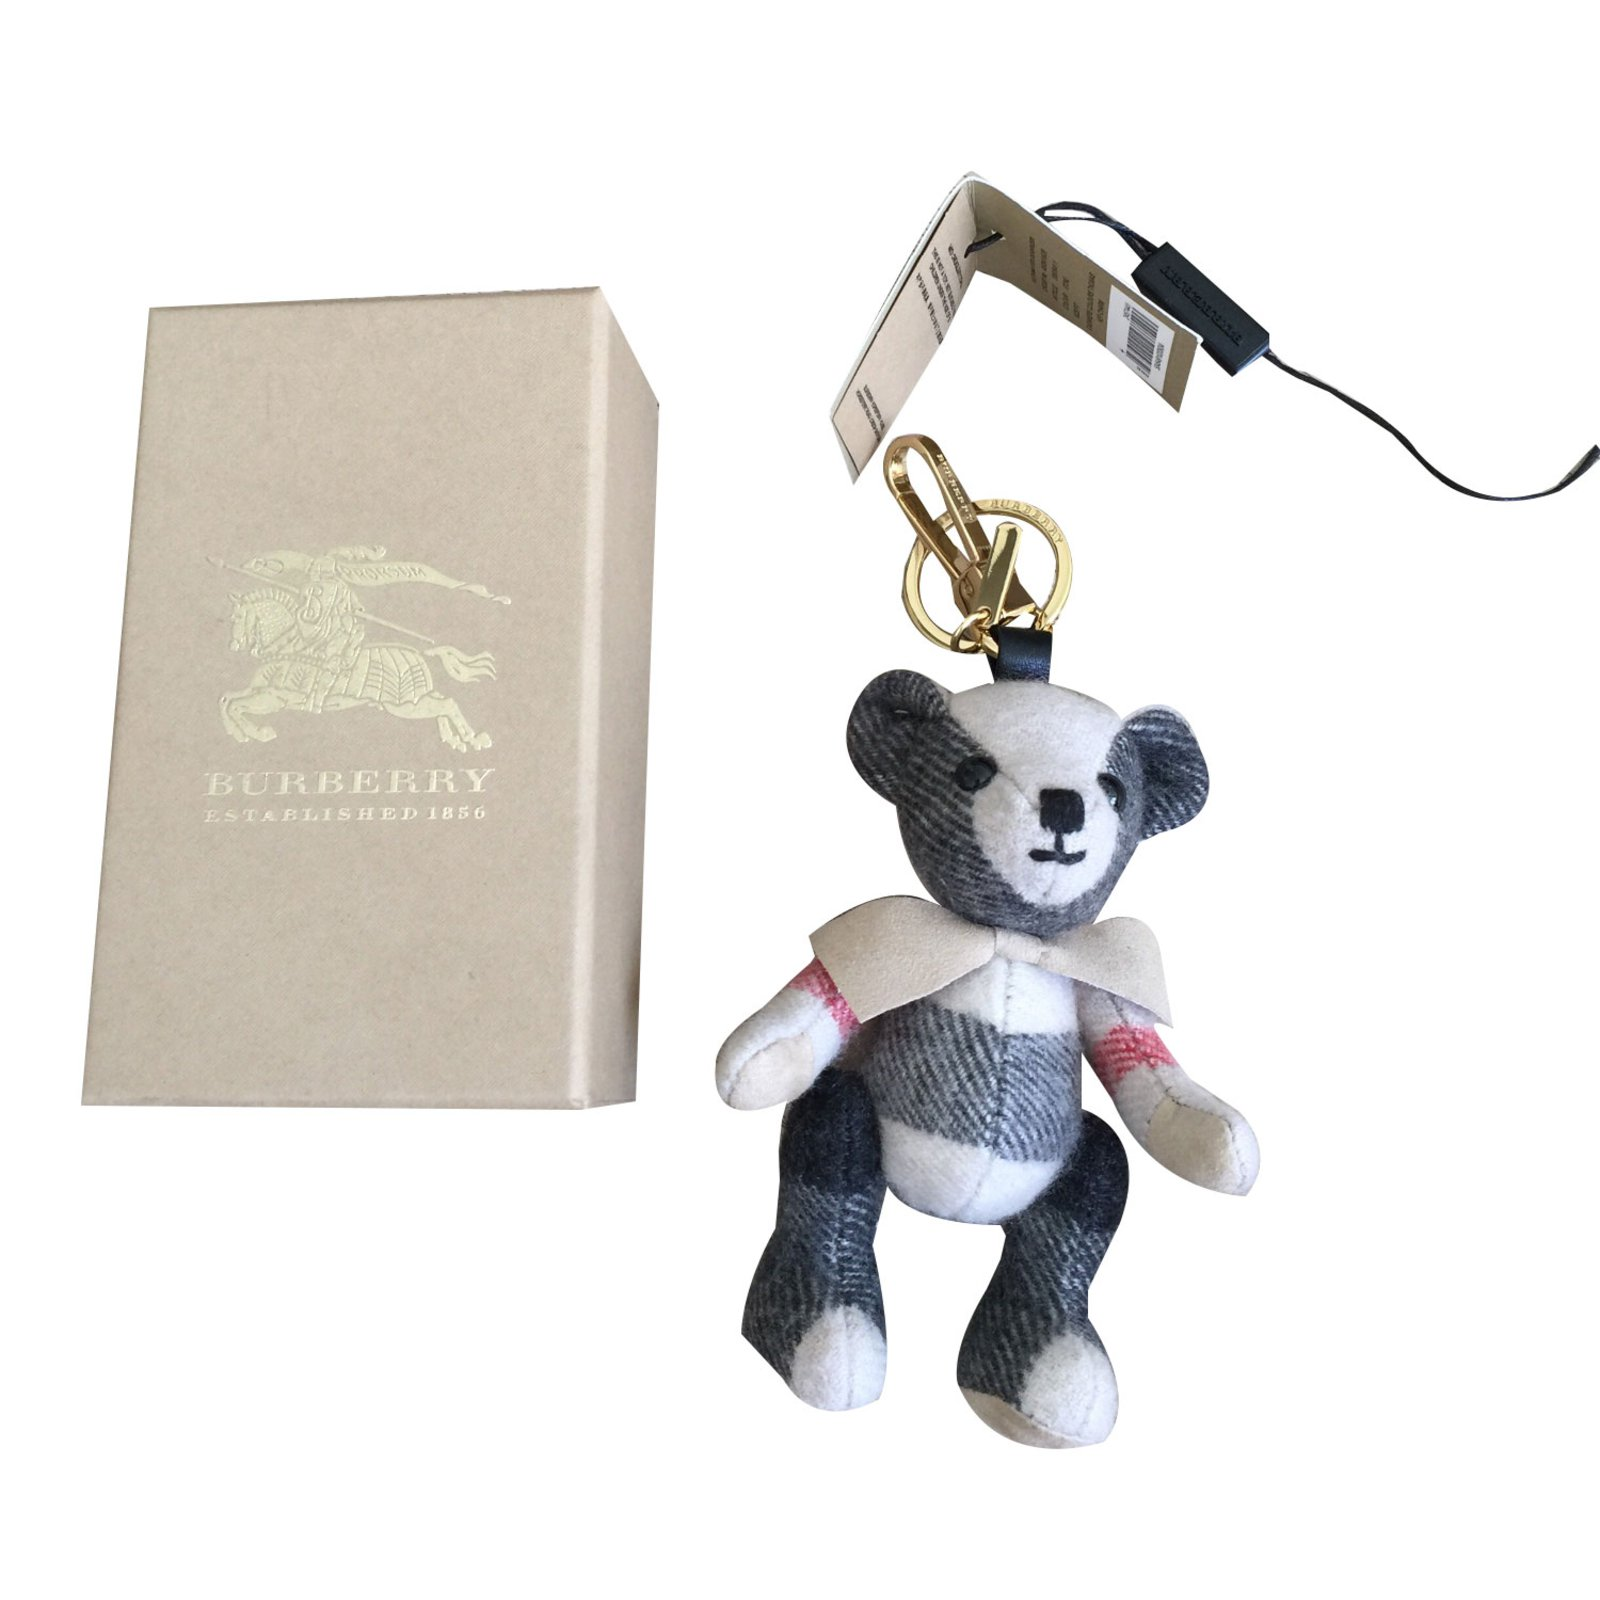 burberry bag charms